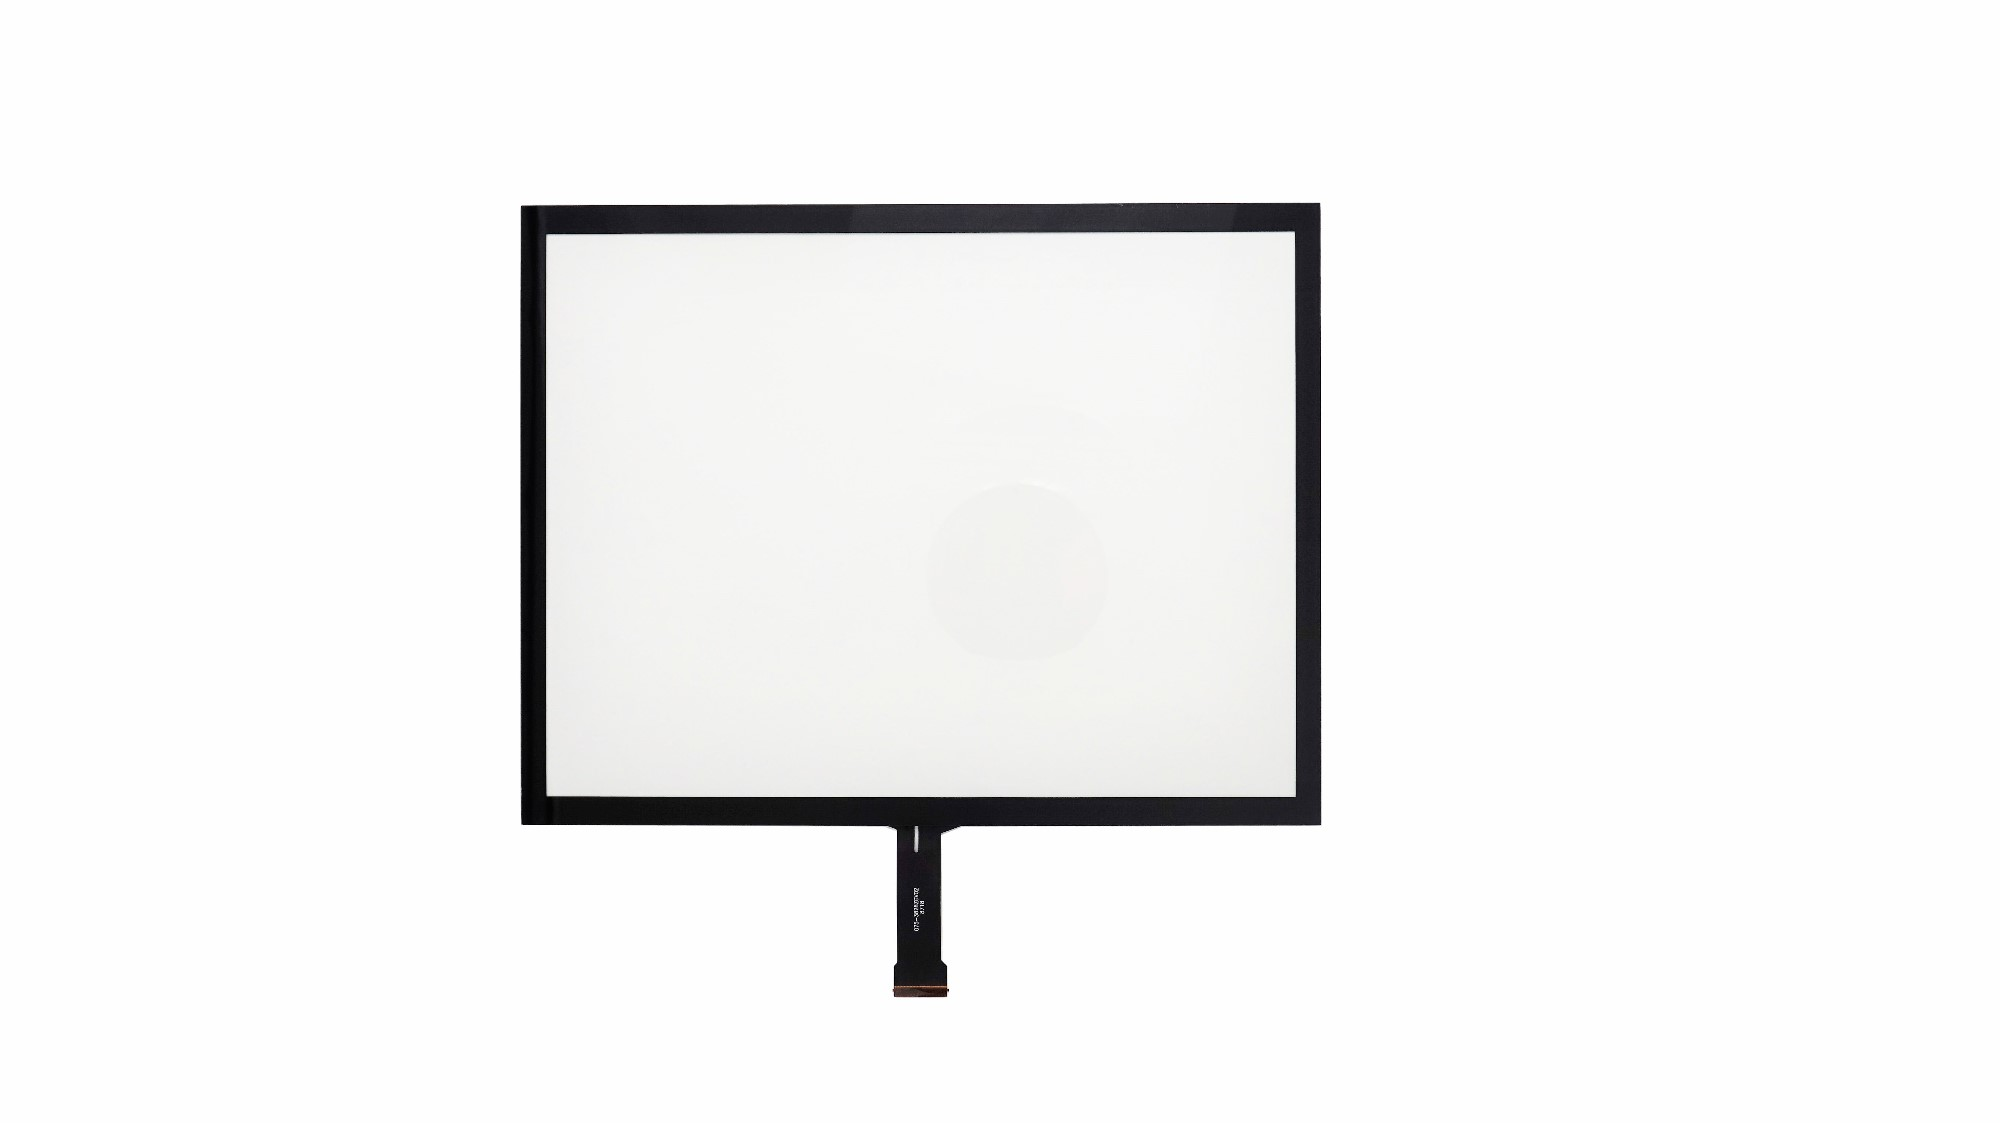 Custom China Usb I2c Interface 15.6 Inch Multi Touch Capacitive Touch Screen, Usb I2c Interface 15.6 Inch Multi Touch Capacitive Touch Screen Factory, Usb I2c Interface 15.6 Inch Multi Touch Capacitive Touch Screen OEM